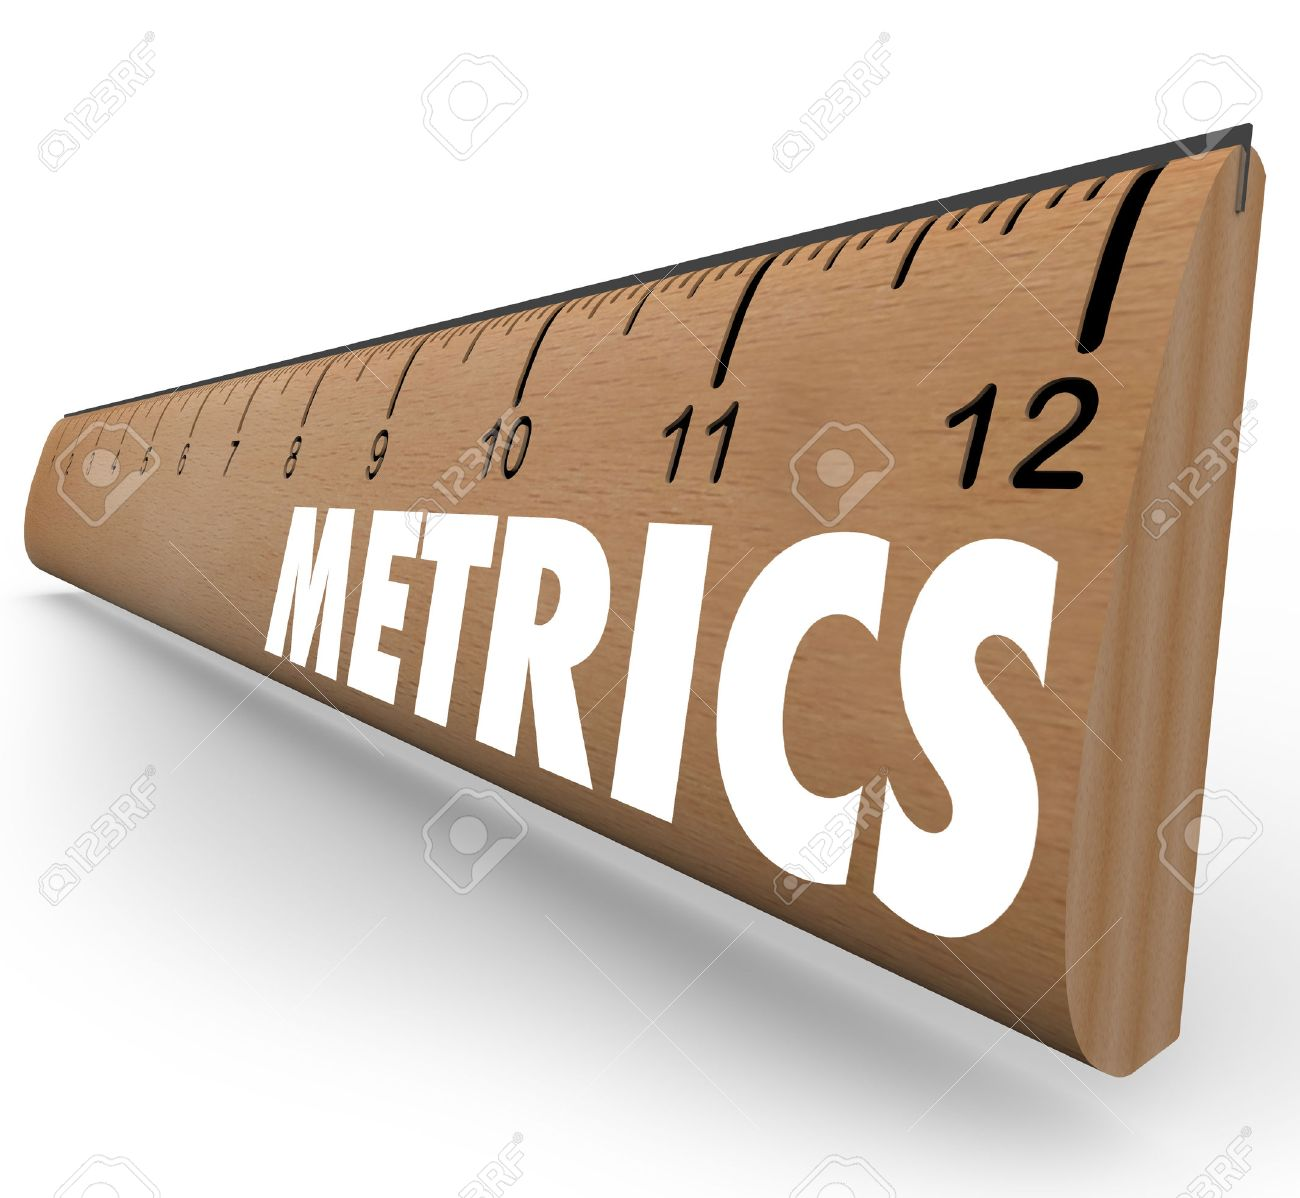 metrics word on a wooden ruler to illustrate a set of measurements metrics word on a wooden ruler to illustrate a set of measurements methodology and benchmarking